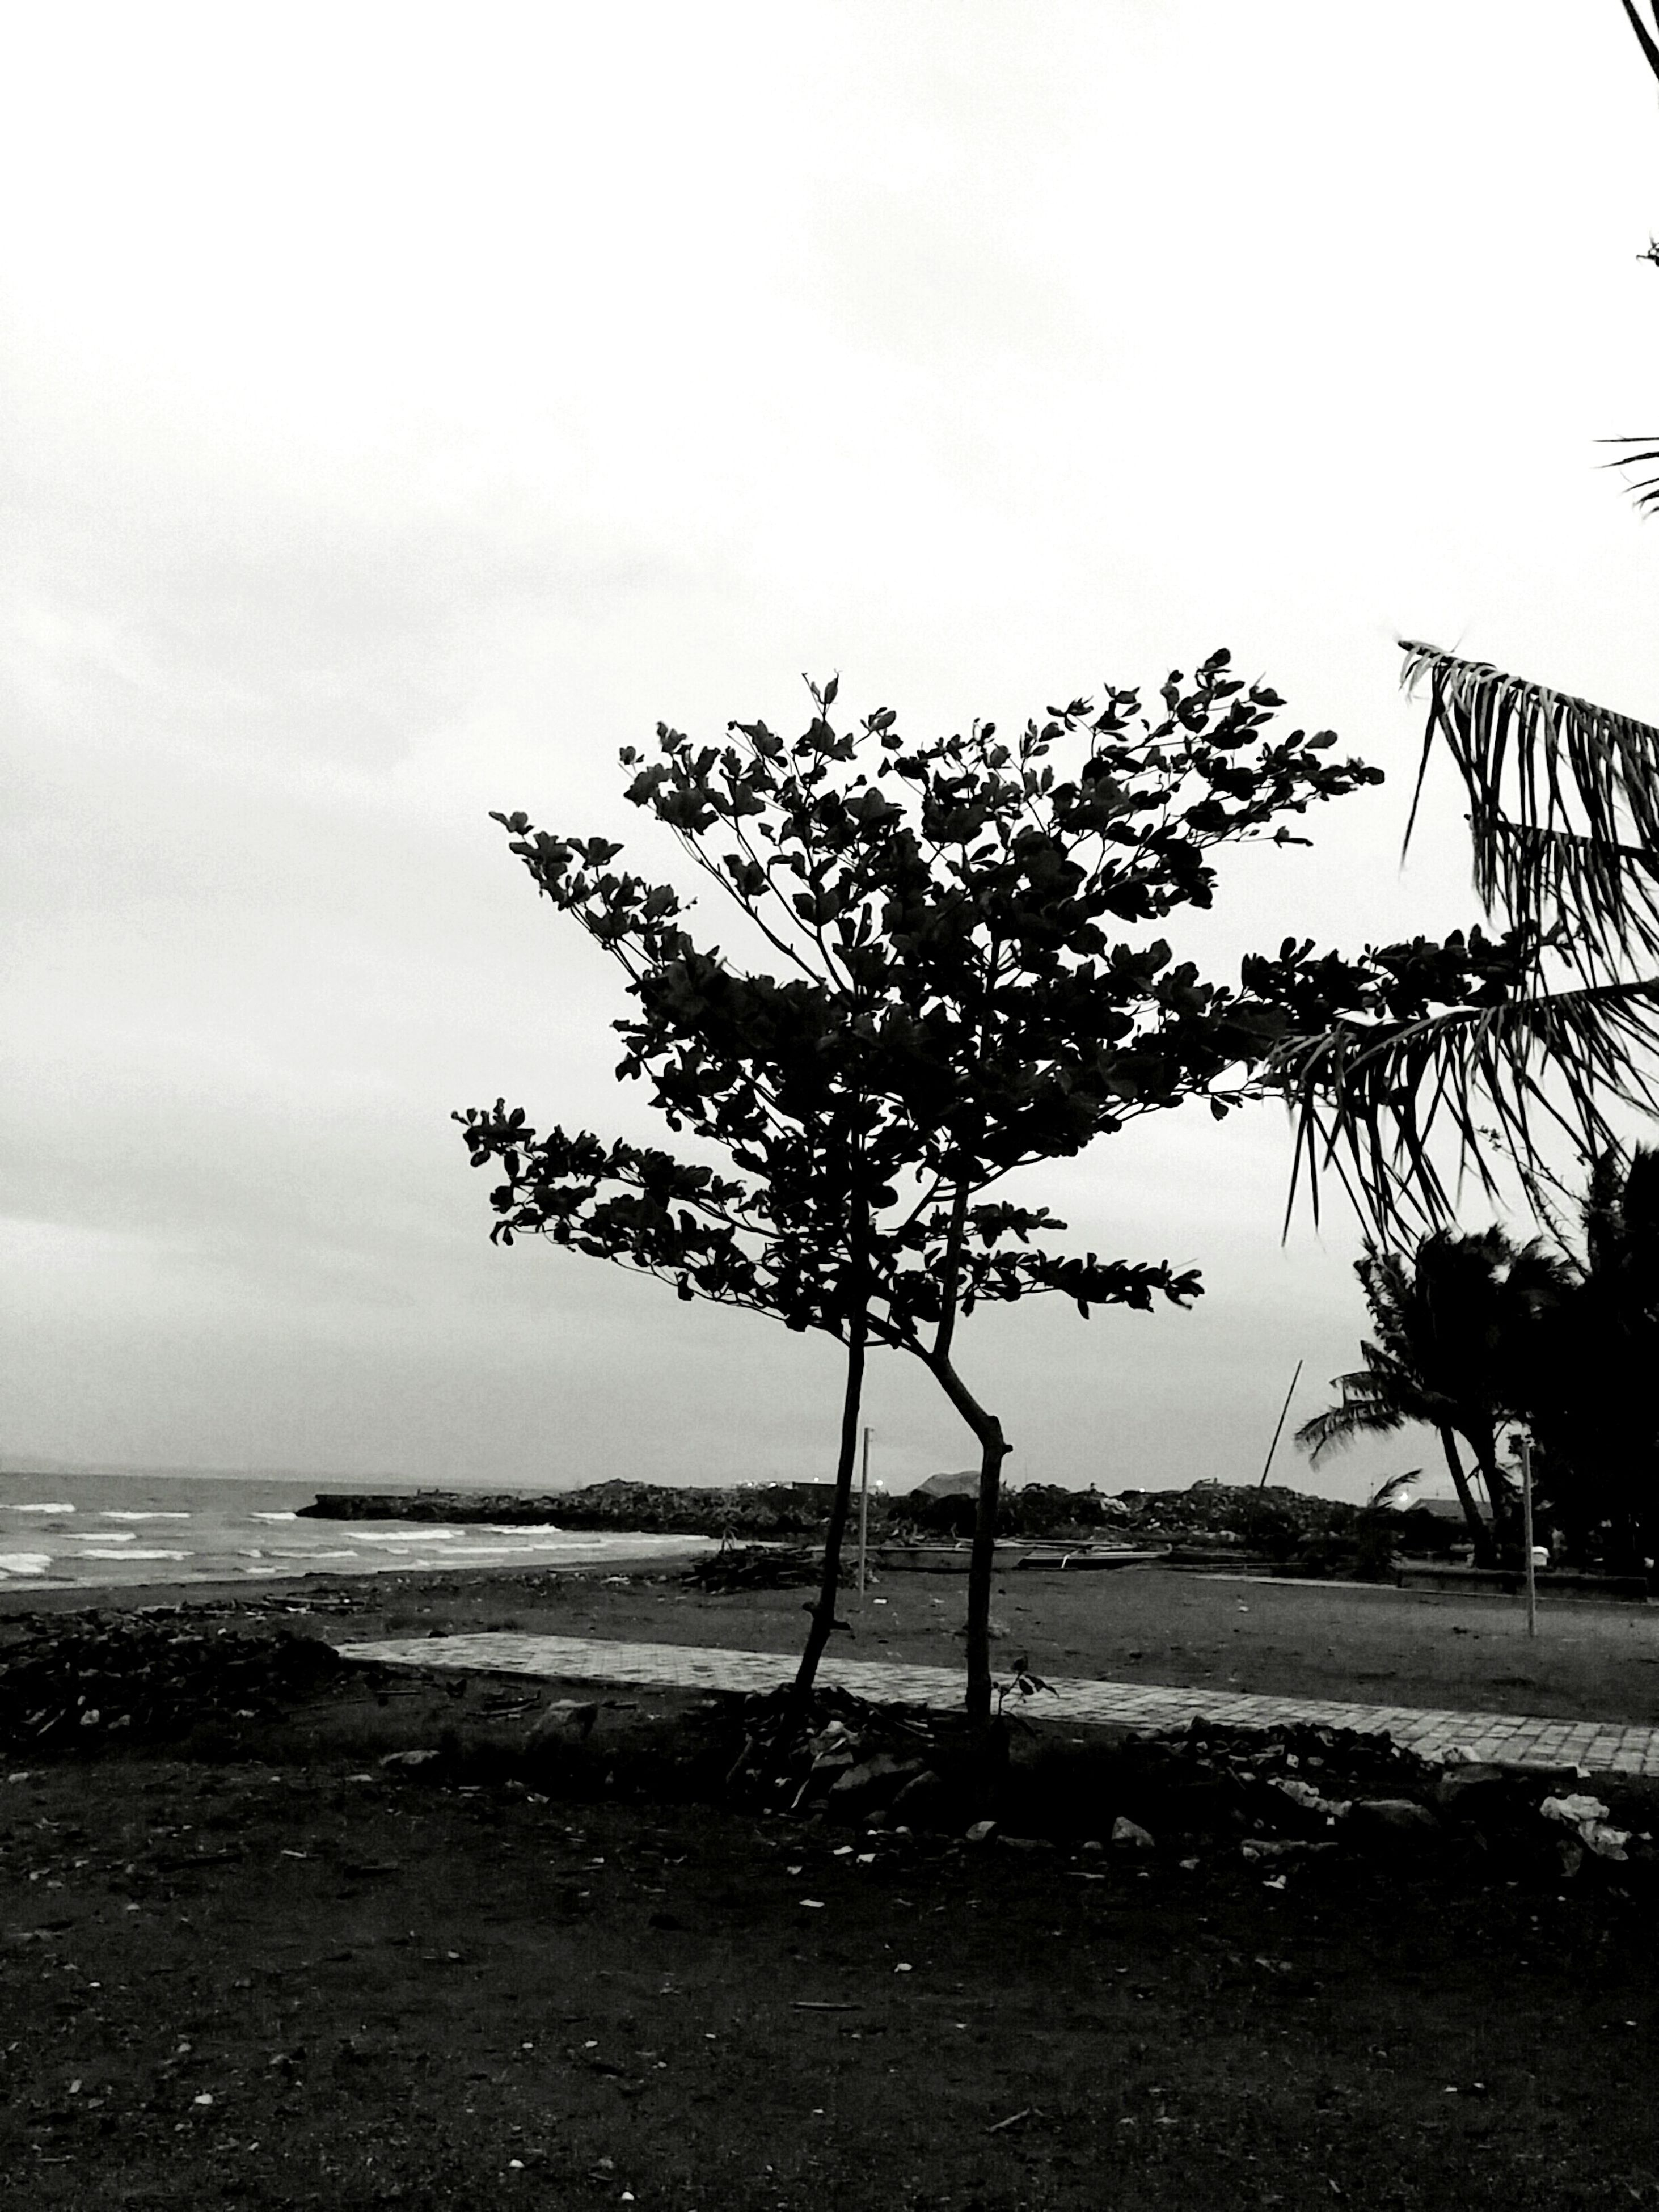 sea, tree, nature, beach, beauty in nature, water, tranquility, tranquil scene, scenics, horizon over water, growth, no people, idyllic, sky, outdoors, day, single tree